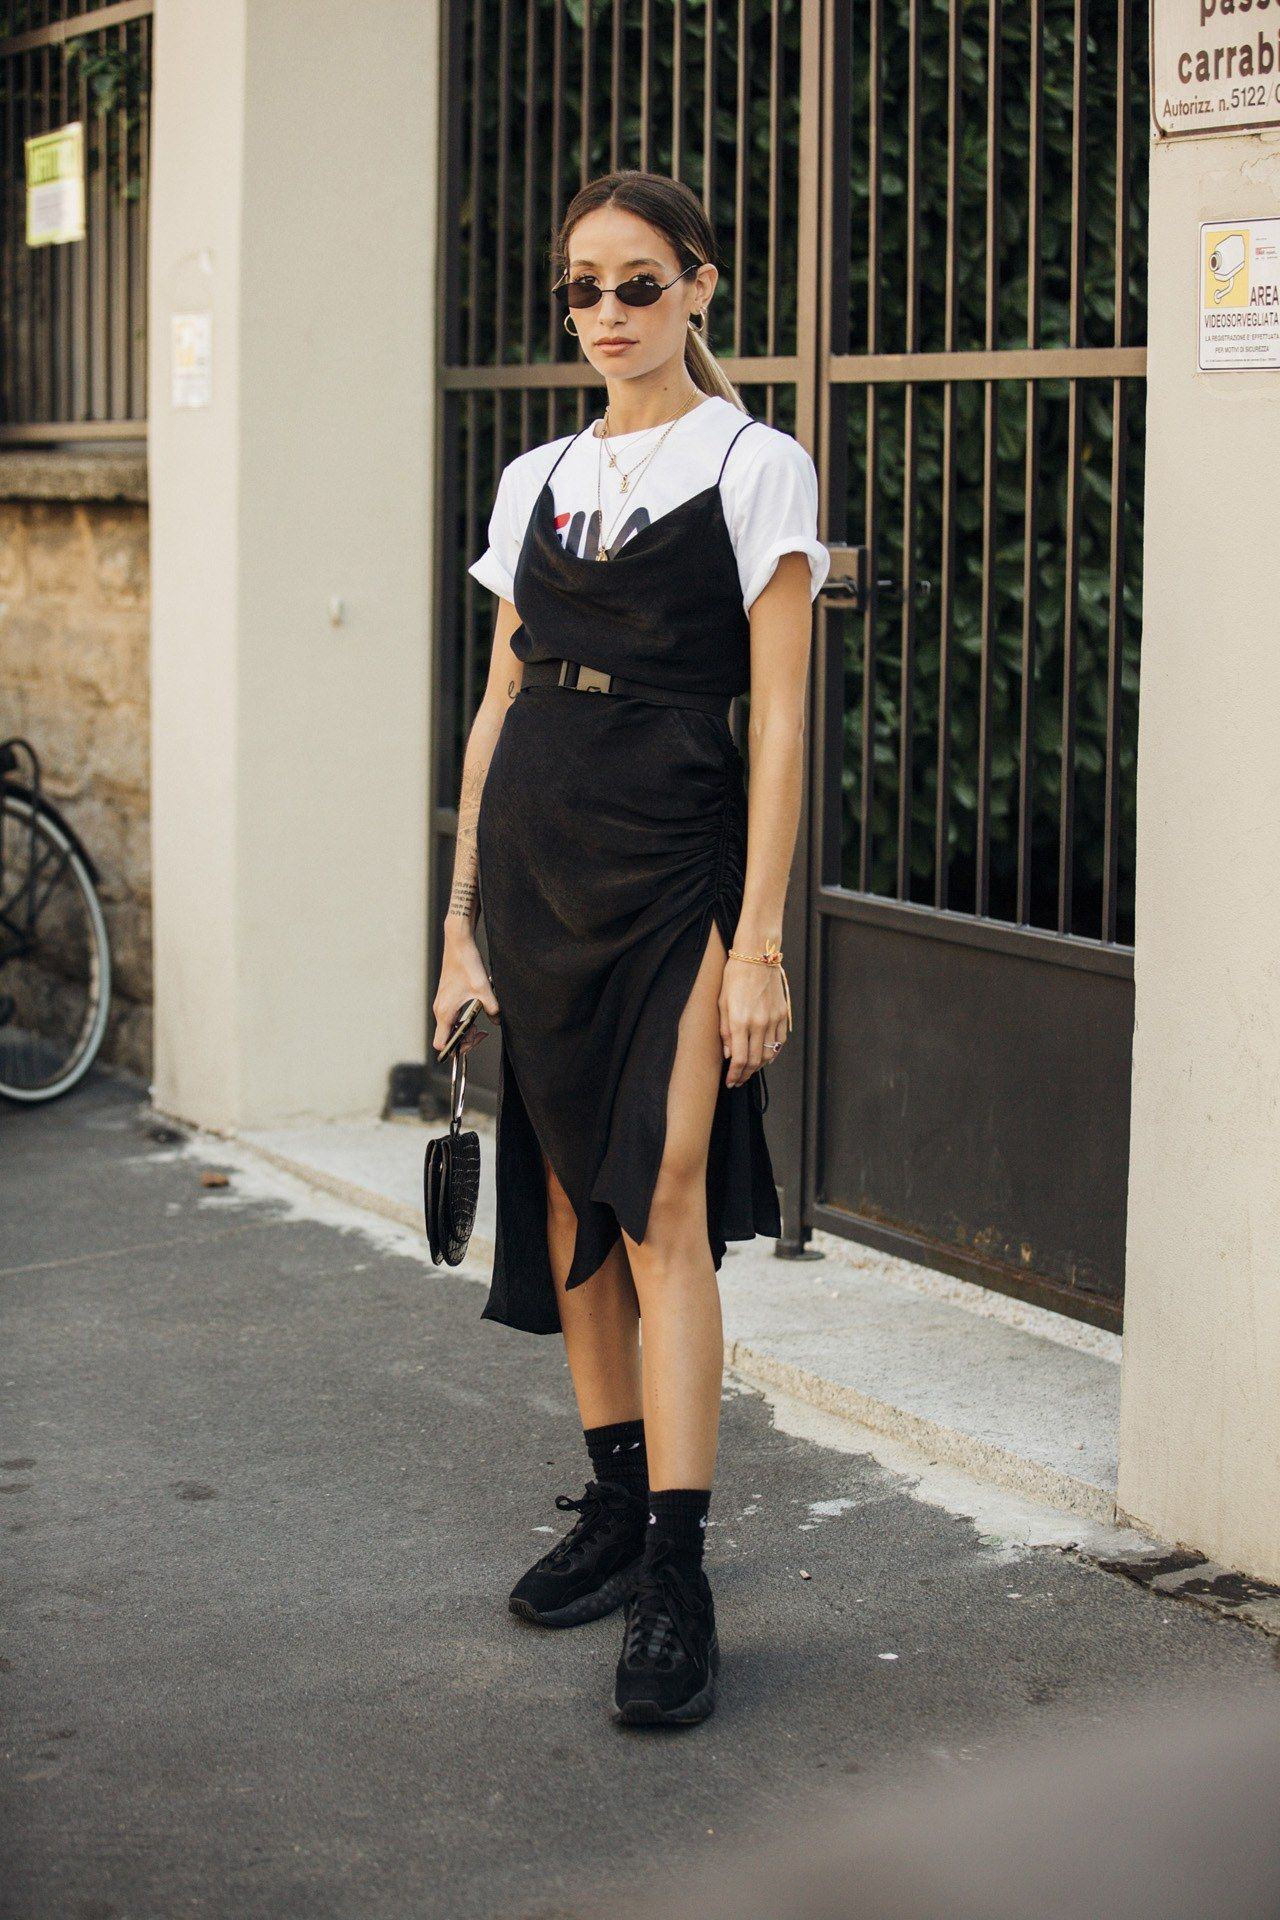 Street-Styles der Mailand Fashion Week F/S 2019 #trendystreetstyle